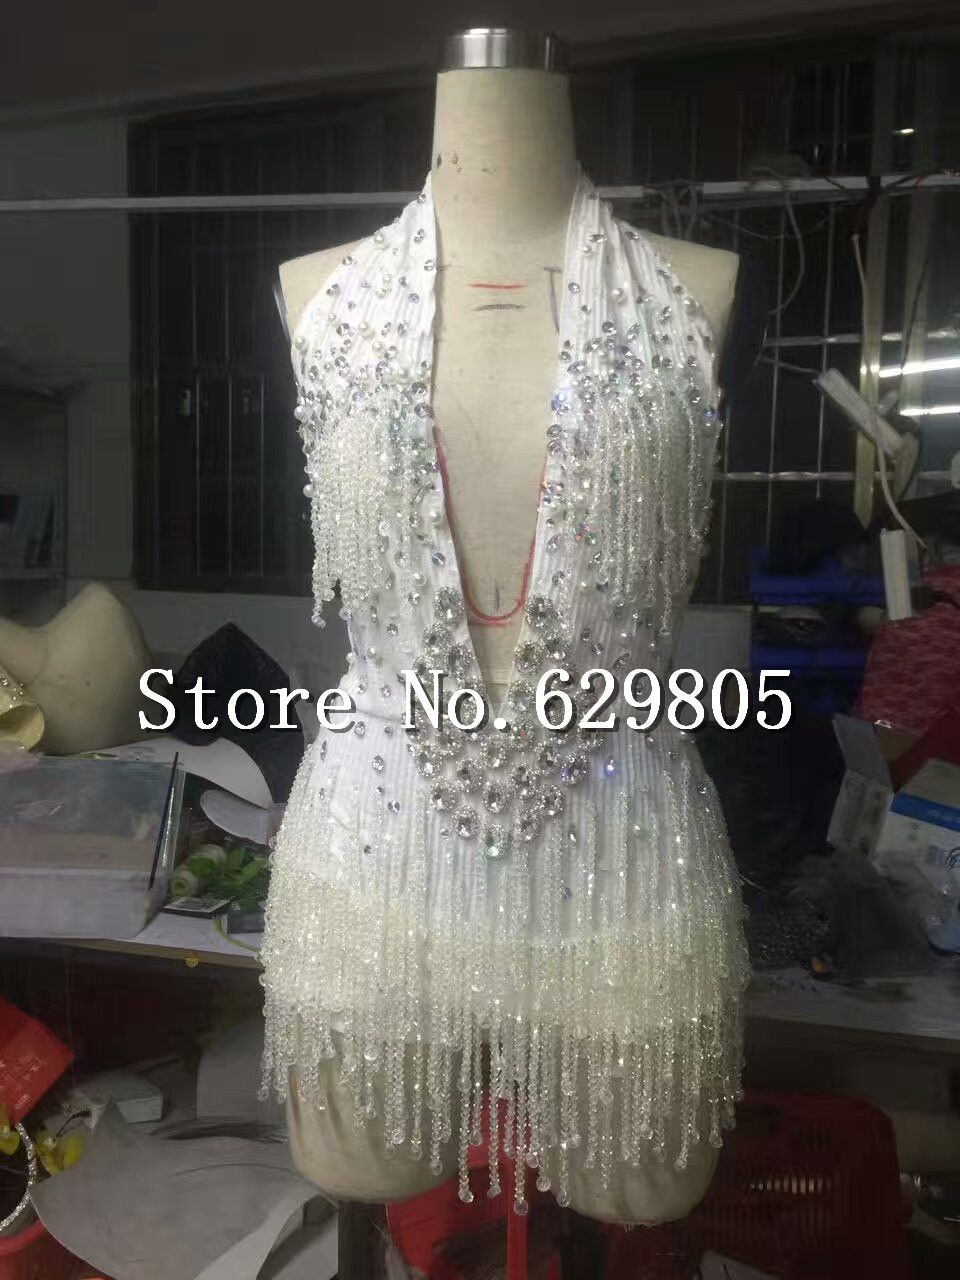 c33b6afcd8eb Glisten Crystals Tassel Bodysuit Rhinestone Shining Sexy Nightclub Wear  Women's Party Female Singer One Piece Dress